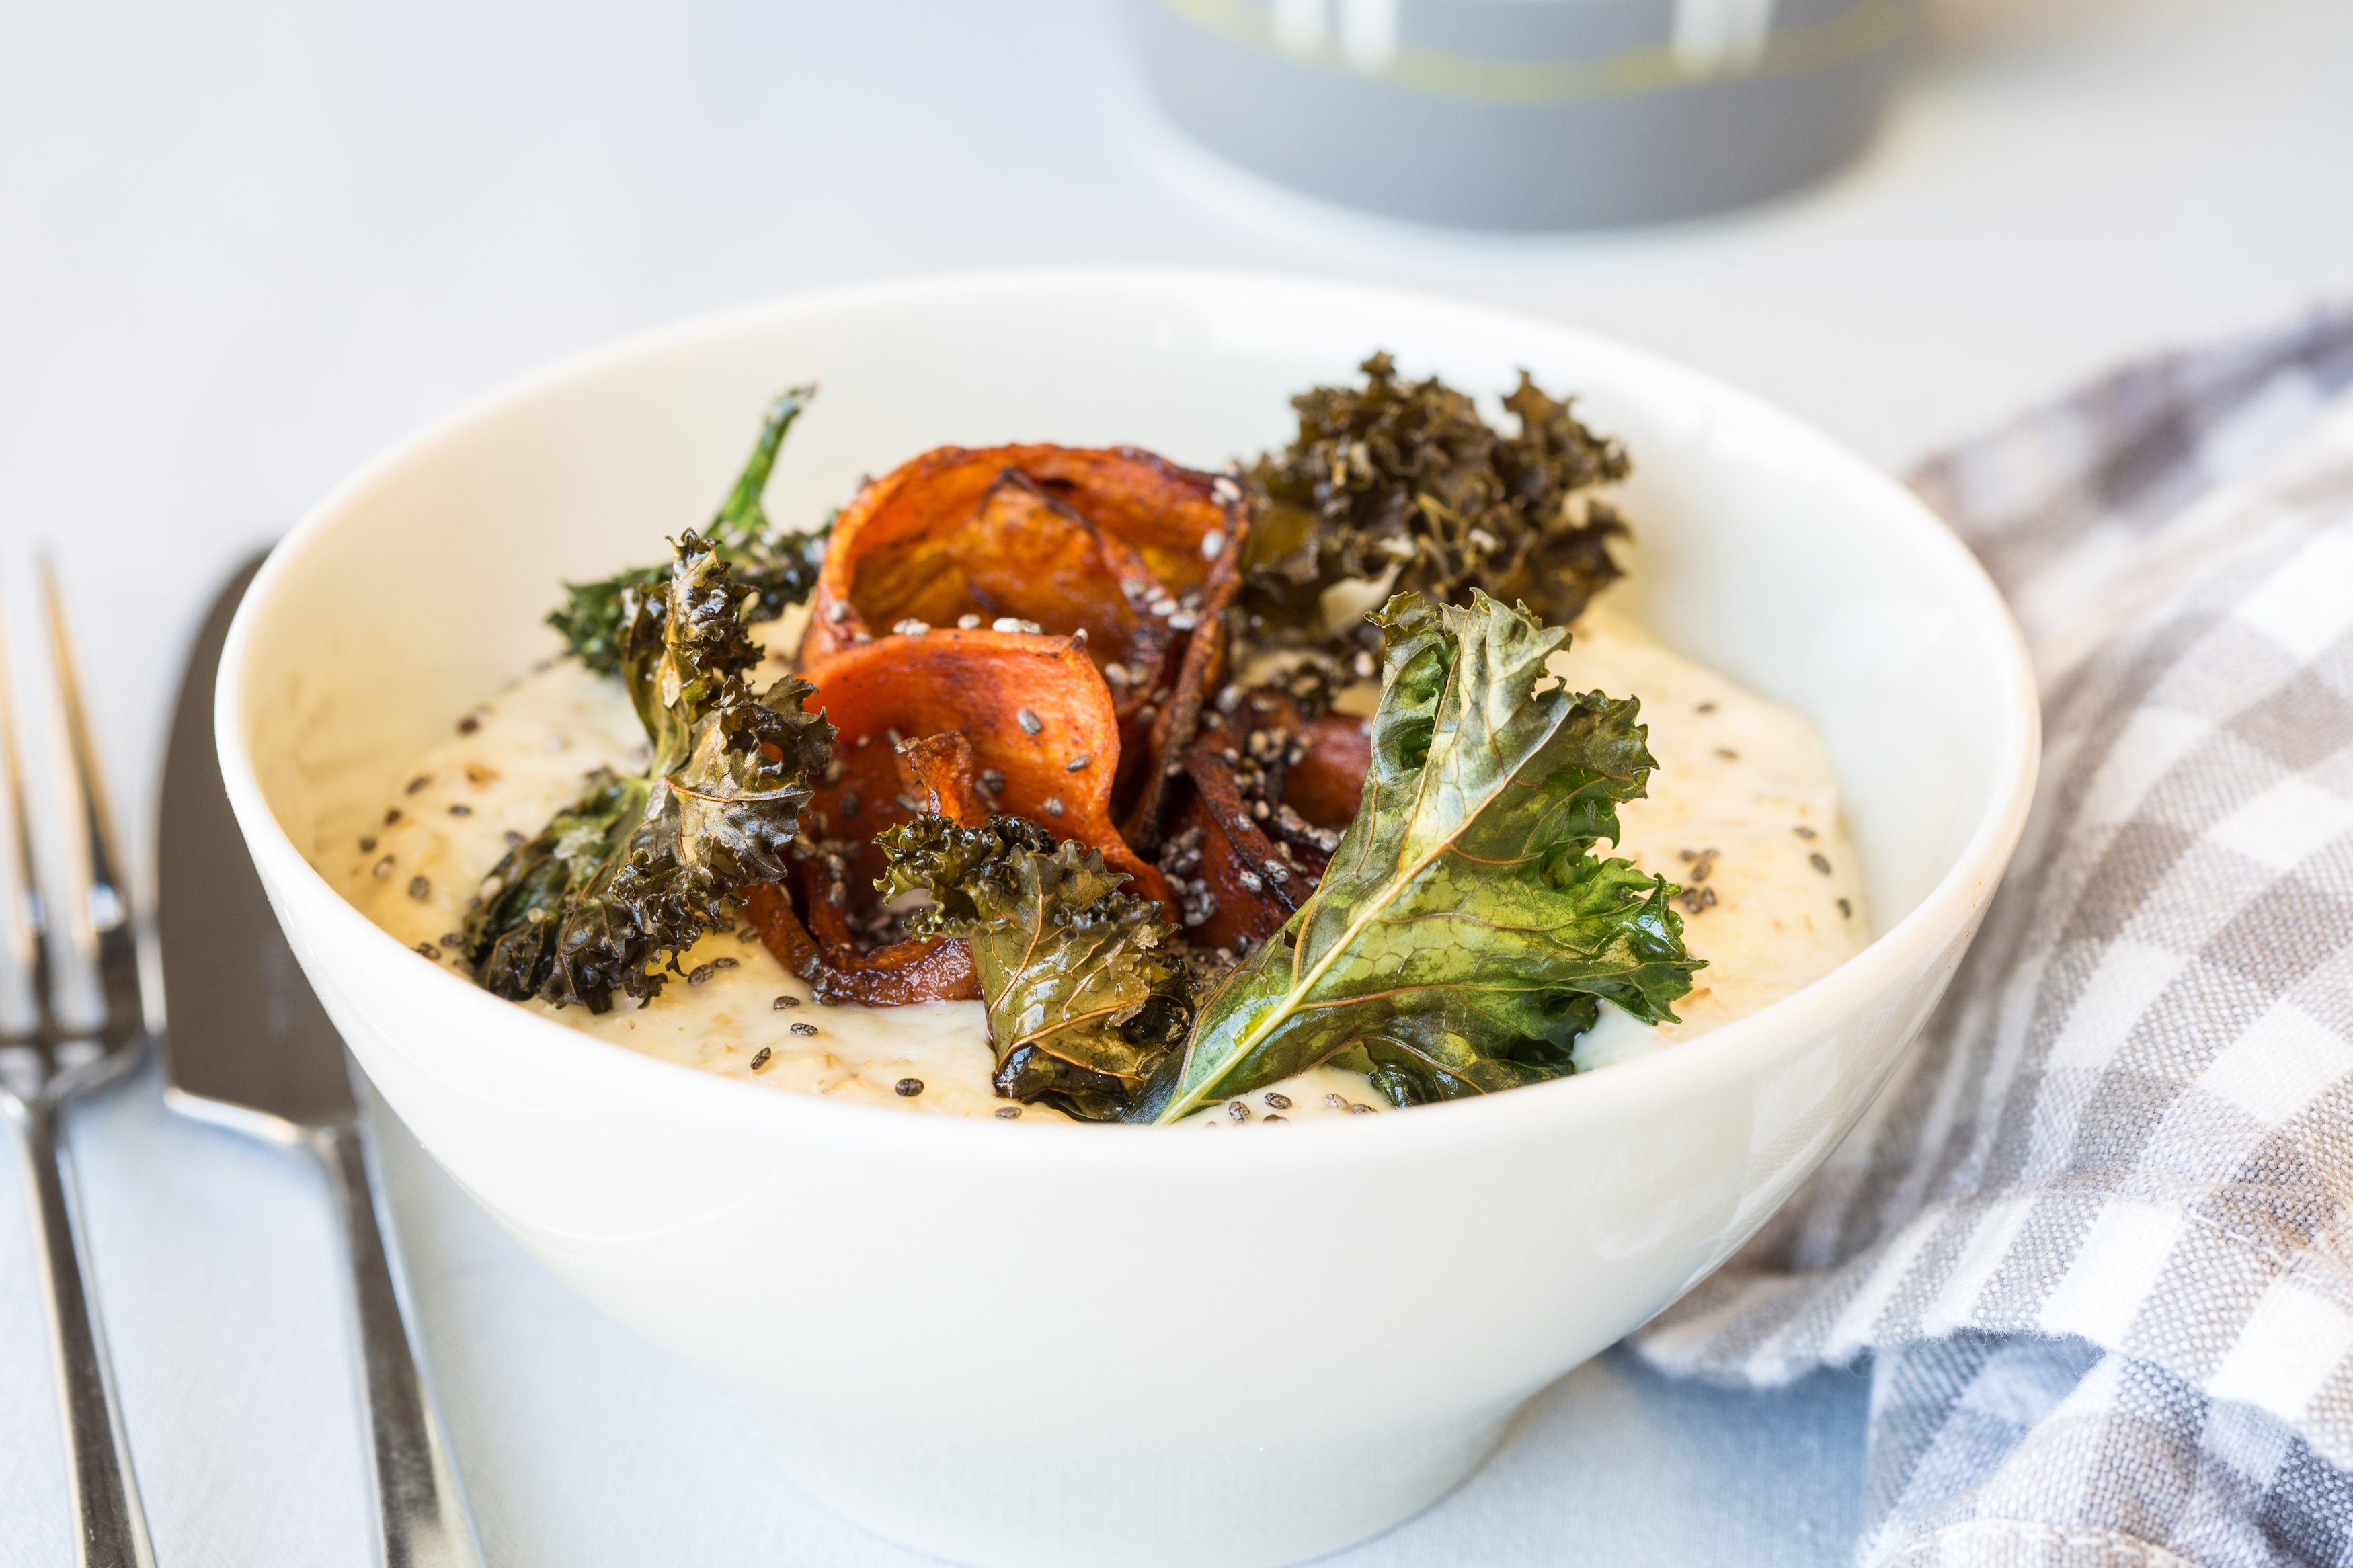 Visit Scotland launches The Porridge Grand Tour of Scotland where tourists can enjoy sweet and savoury porridge dishes for breakfast, lunch and dinner whilst admiring stunning Scottish landscapes.